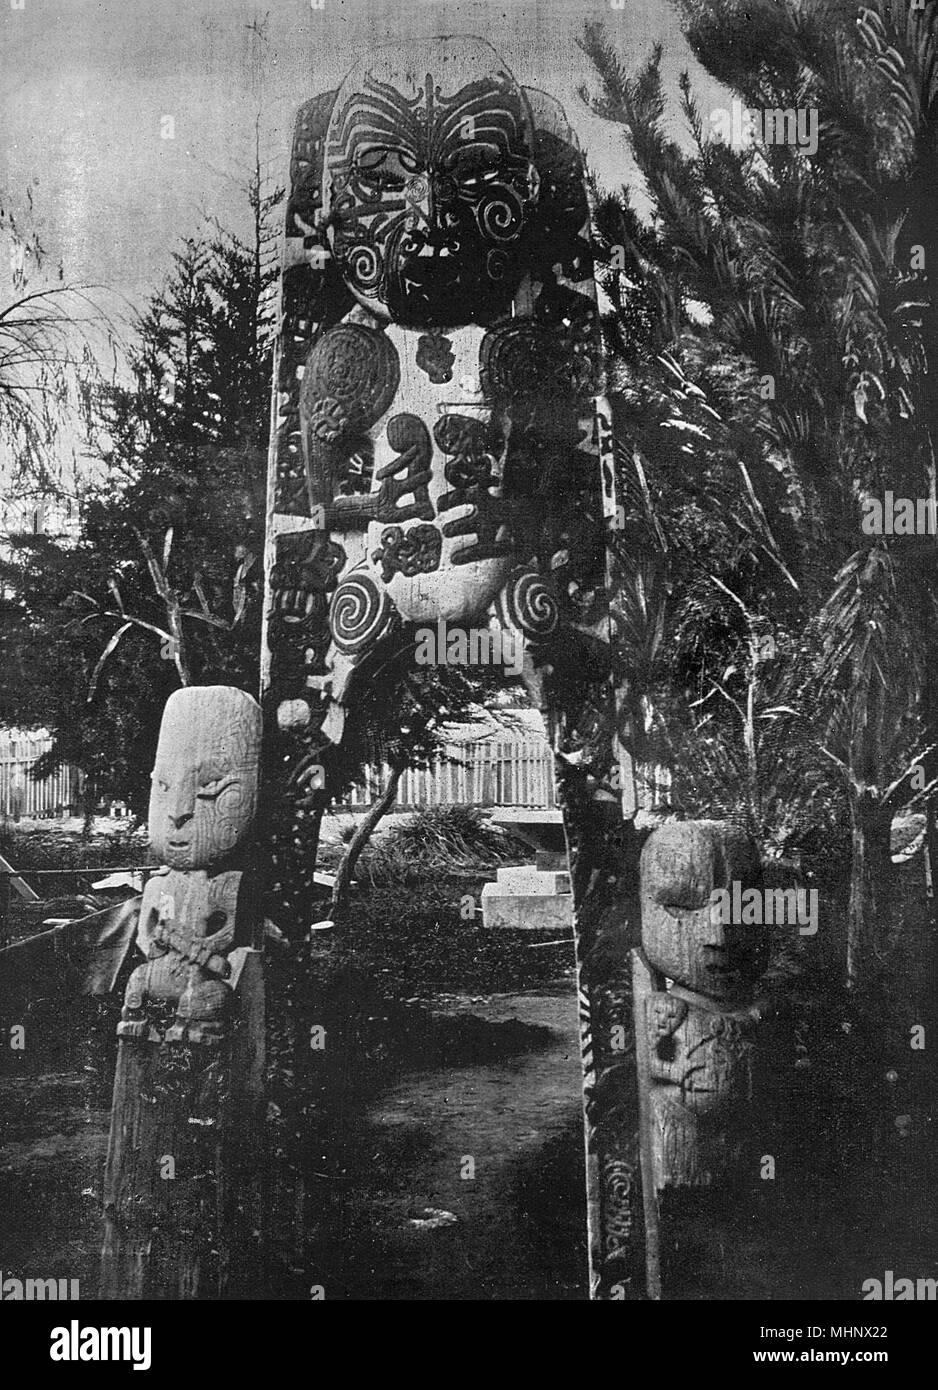 A specimen of Maori wood carving at Rotorua, in the Hot Lake district of the North Island of New Zealand, representing the god Tiki.     Date: circa 1900 - Stock Image